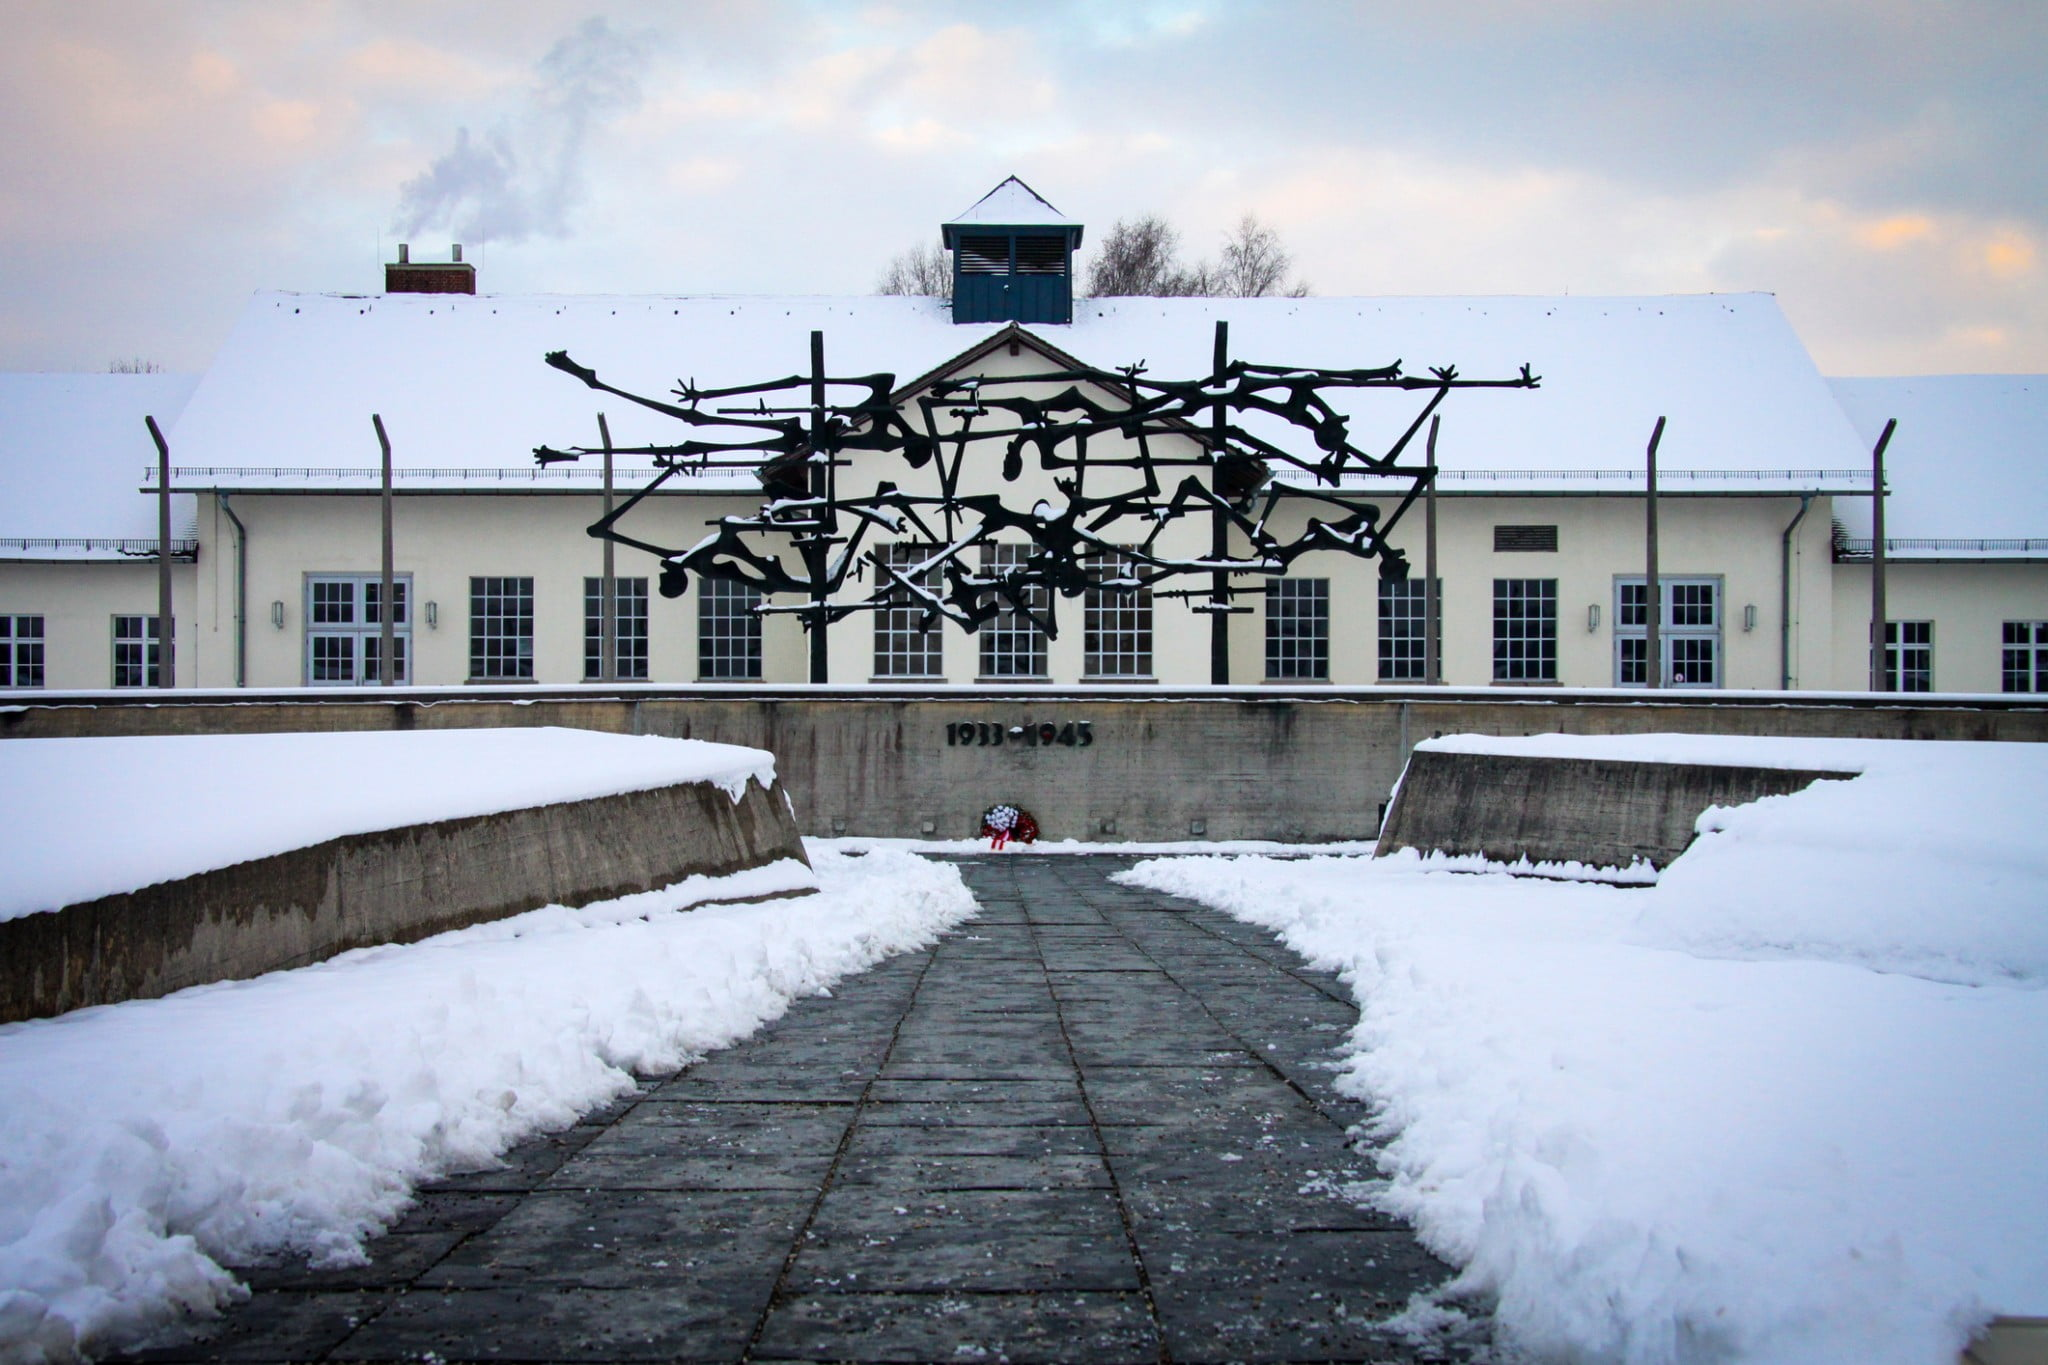 Syrian Refugees Give Dachau Concentration Camp Scathing